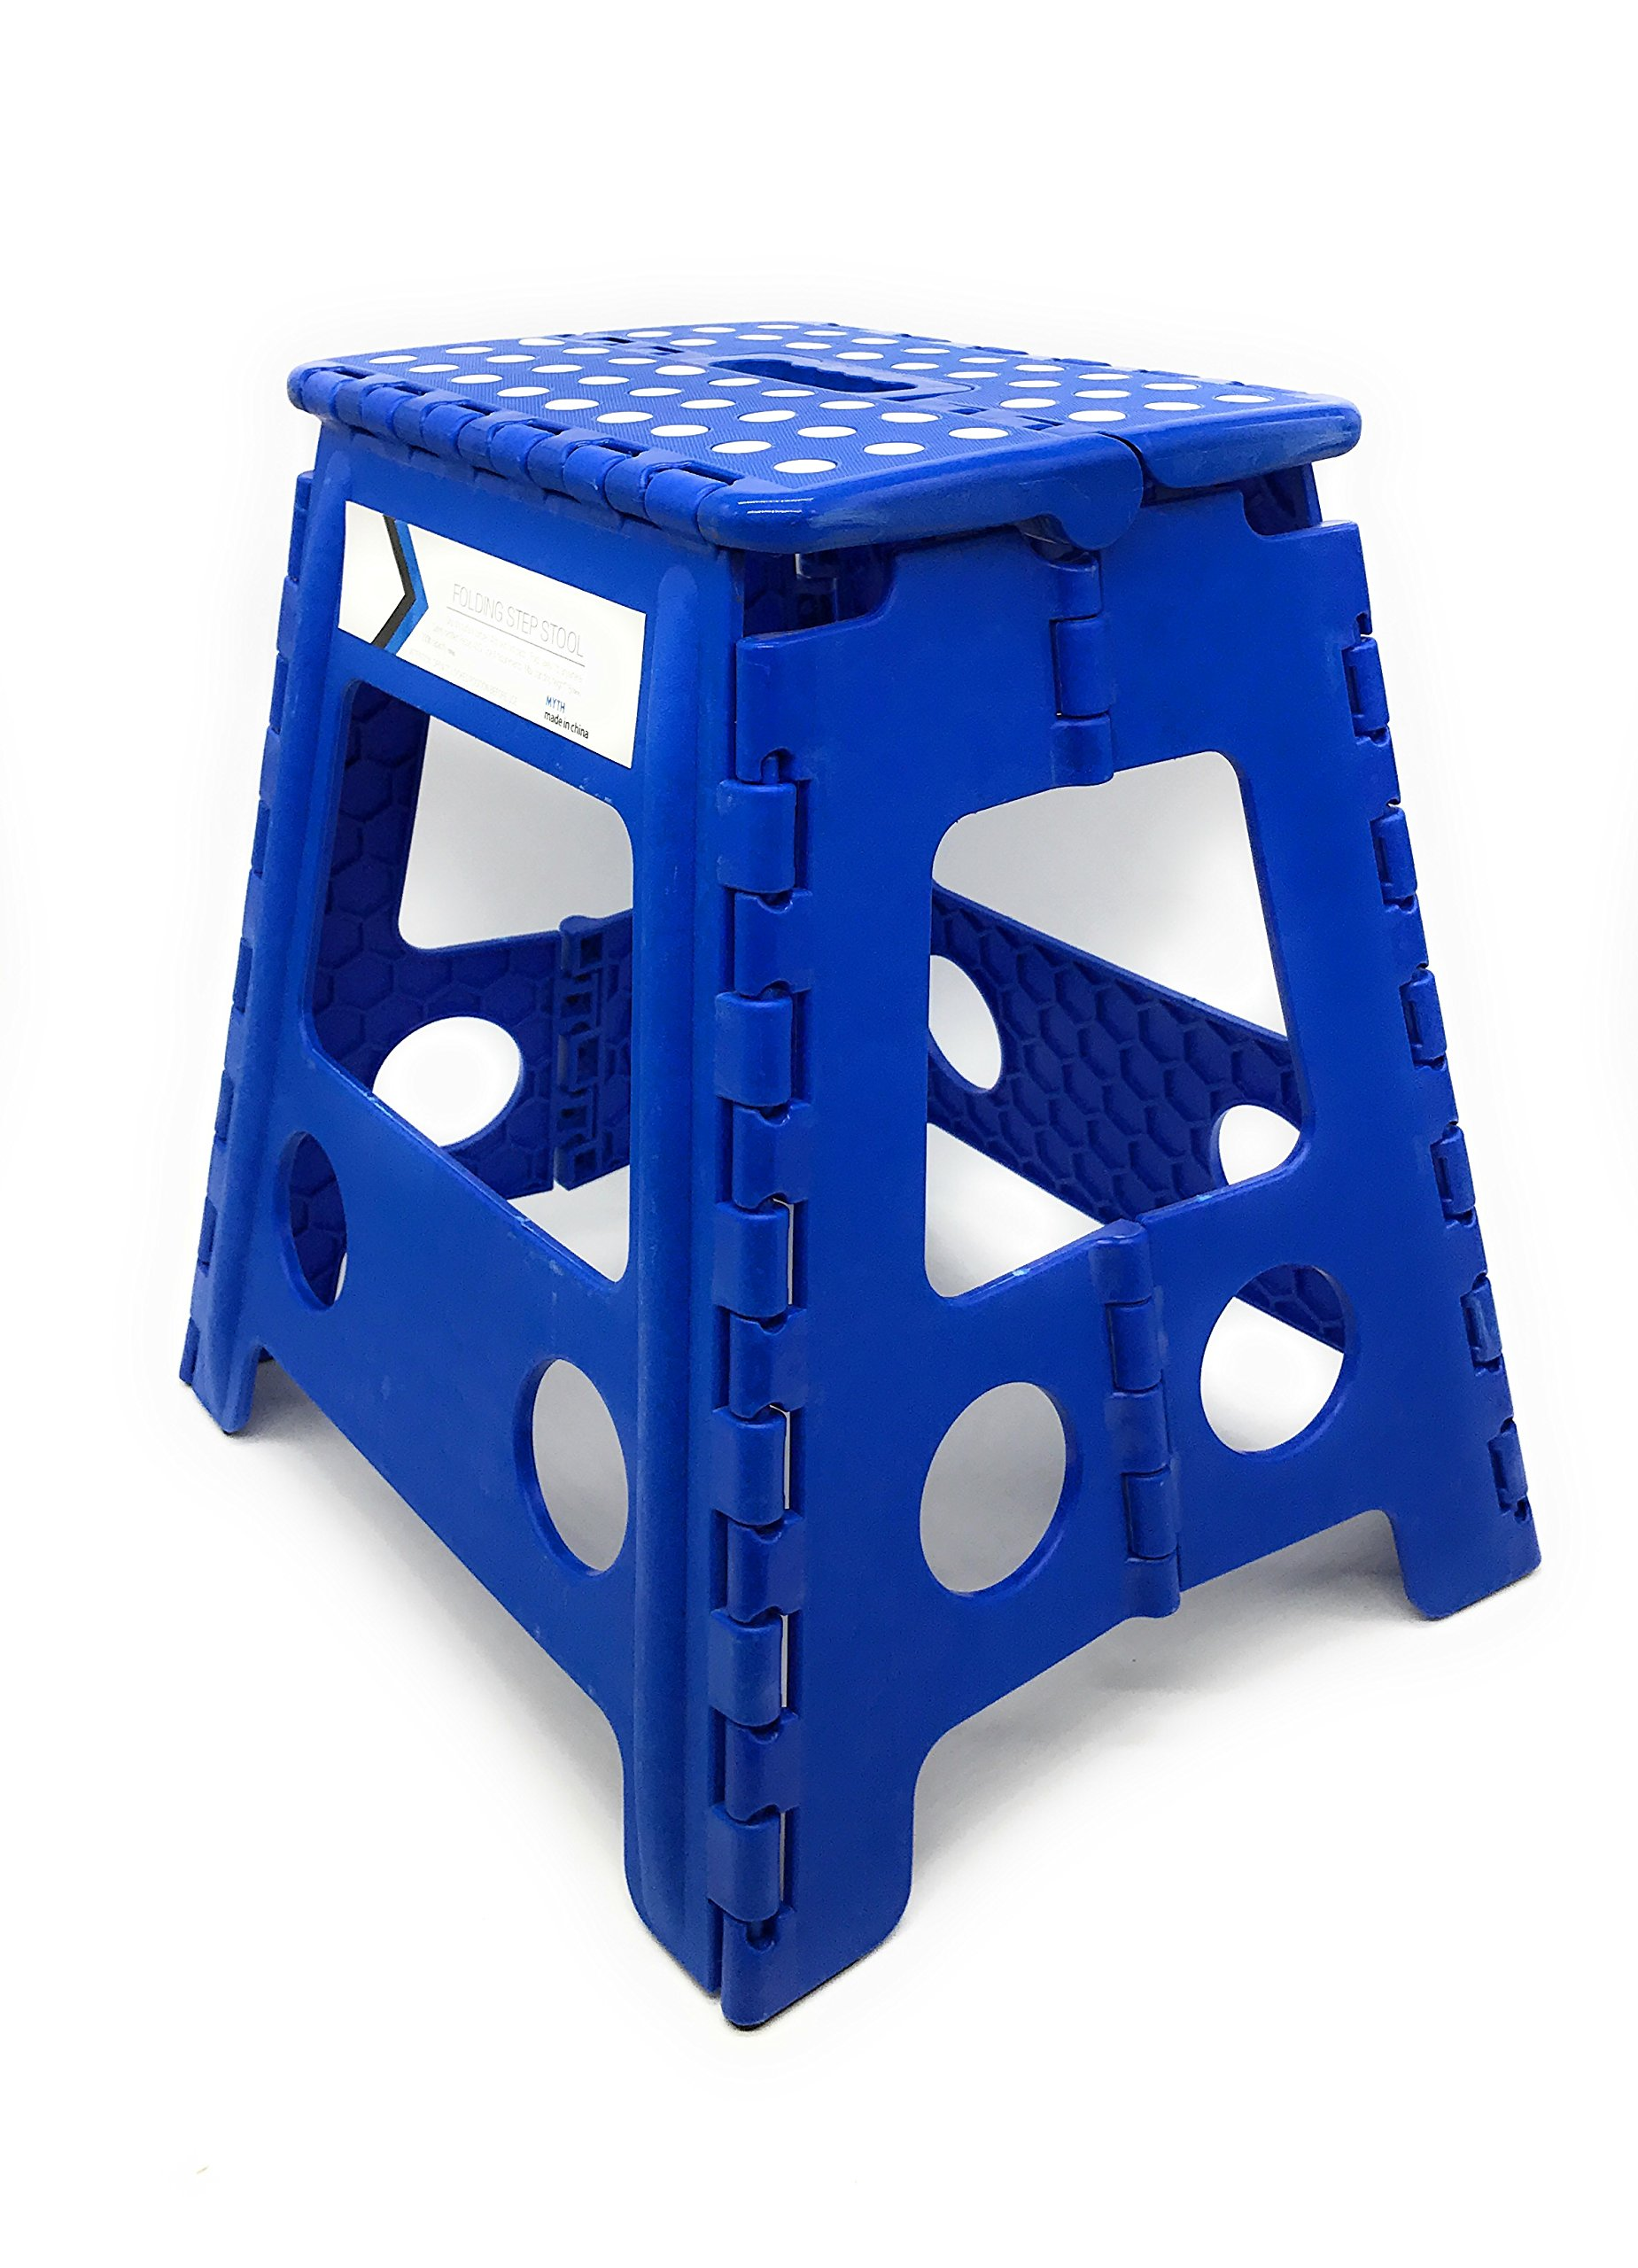 Folding Step Stool 16 Inches Height by Myth with Anti-Slip Surface Great for Kitchen, Bathroom, Bedroom, Kids or Adults Super Strong Holds Up to 330 LBS (Blue)